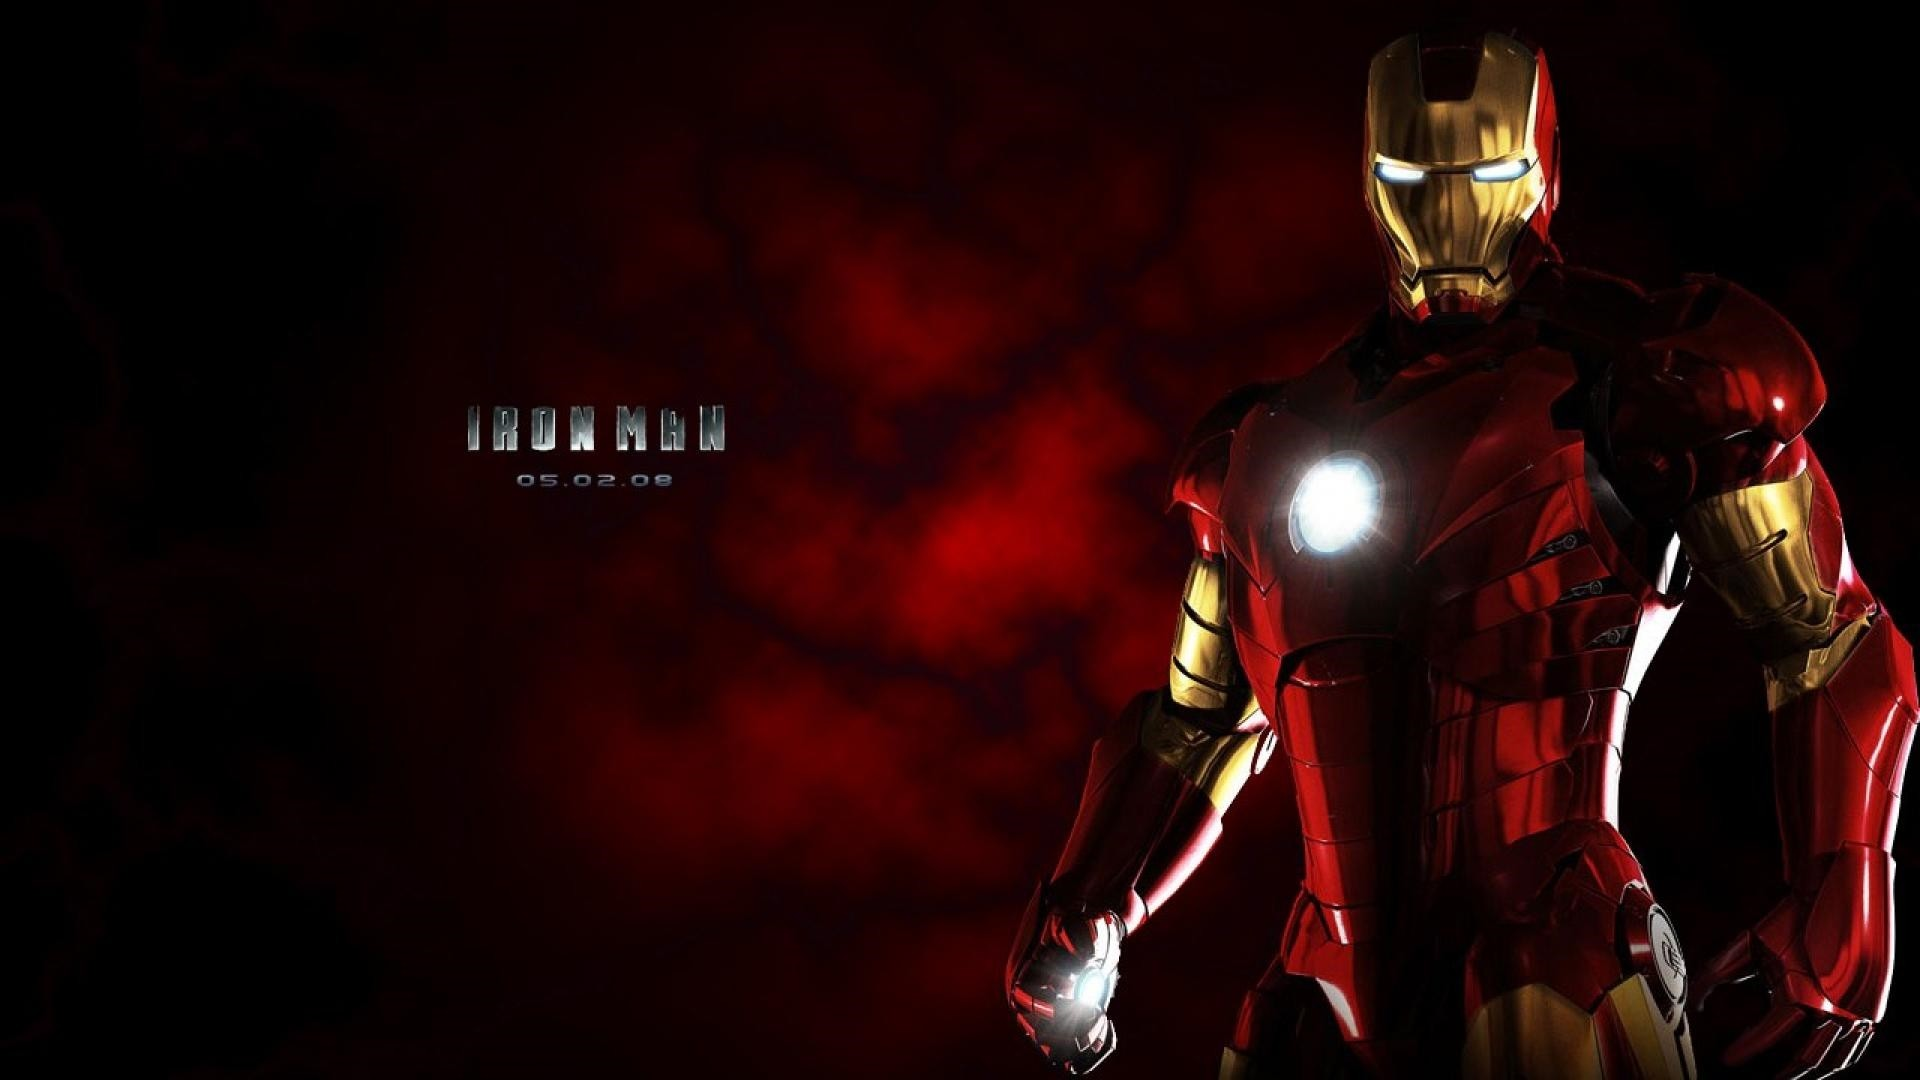 1920x1080 ... Iron Man Wallpapers | Page 3